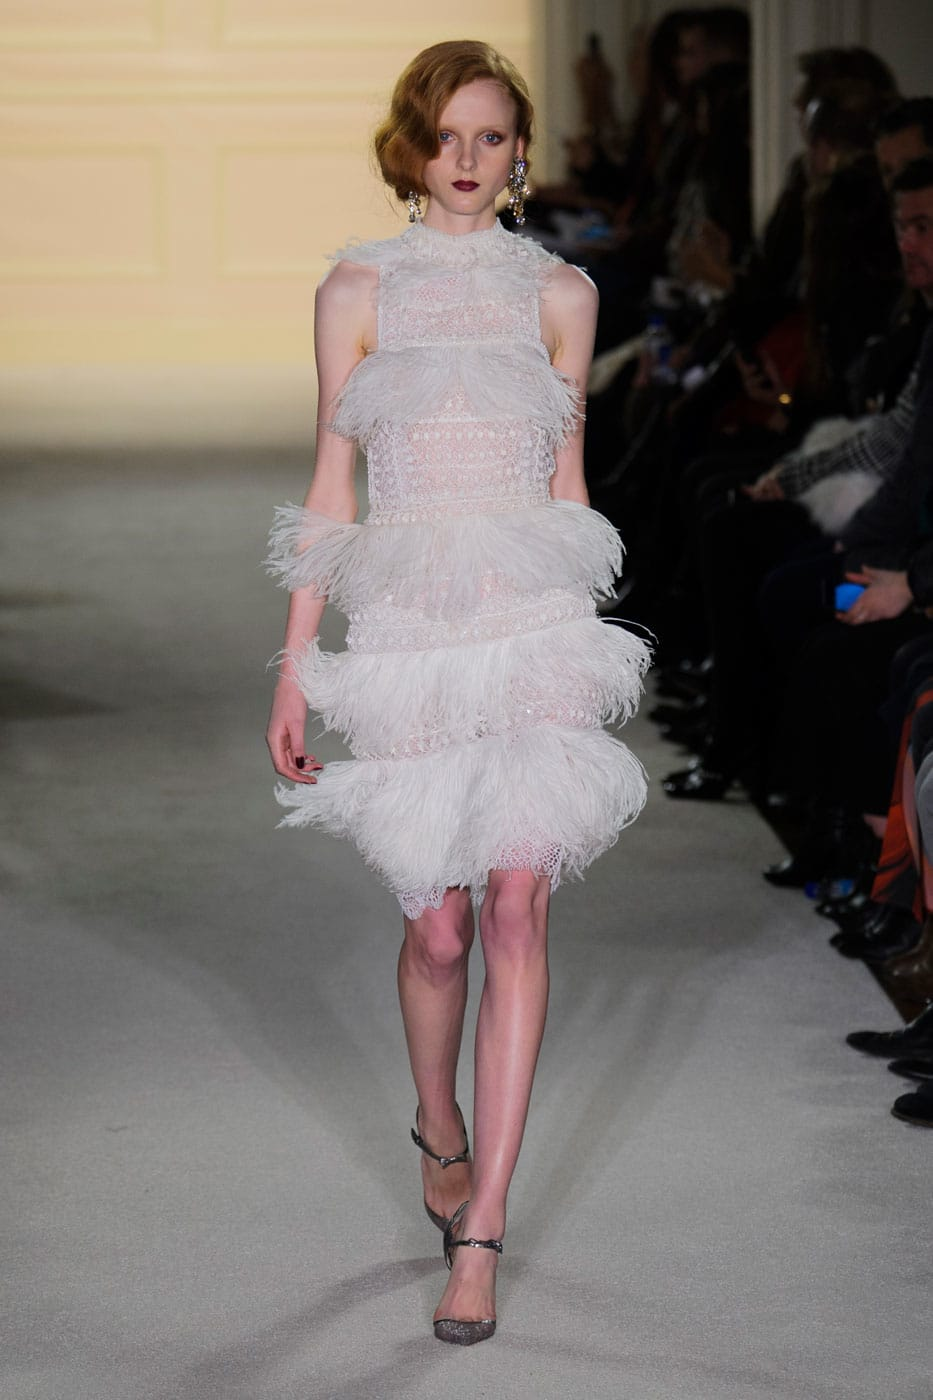 New York Fashion Week Coverage: Marchesa Fall 2015 Collection